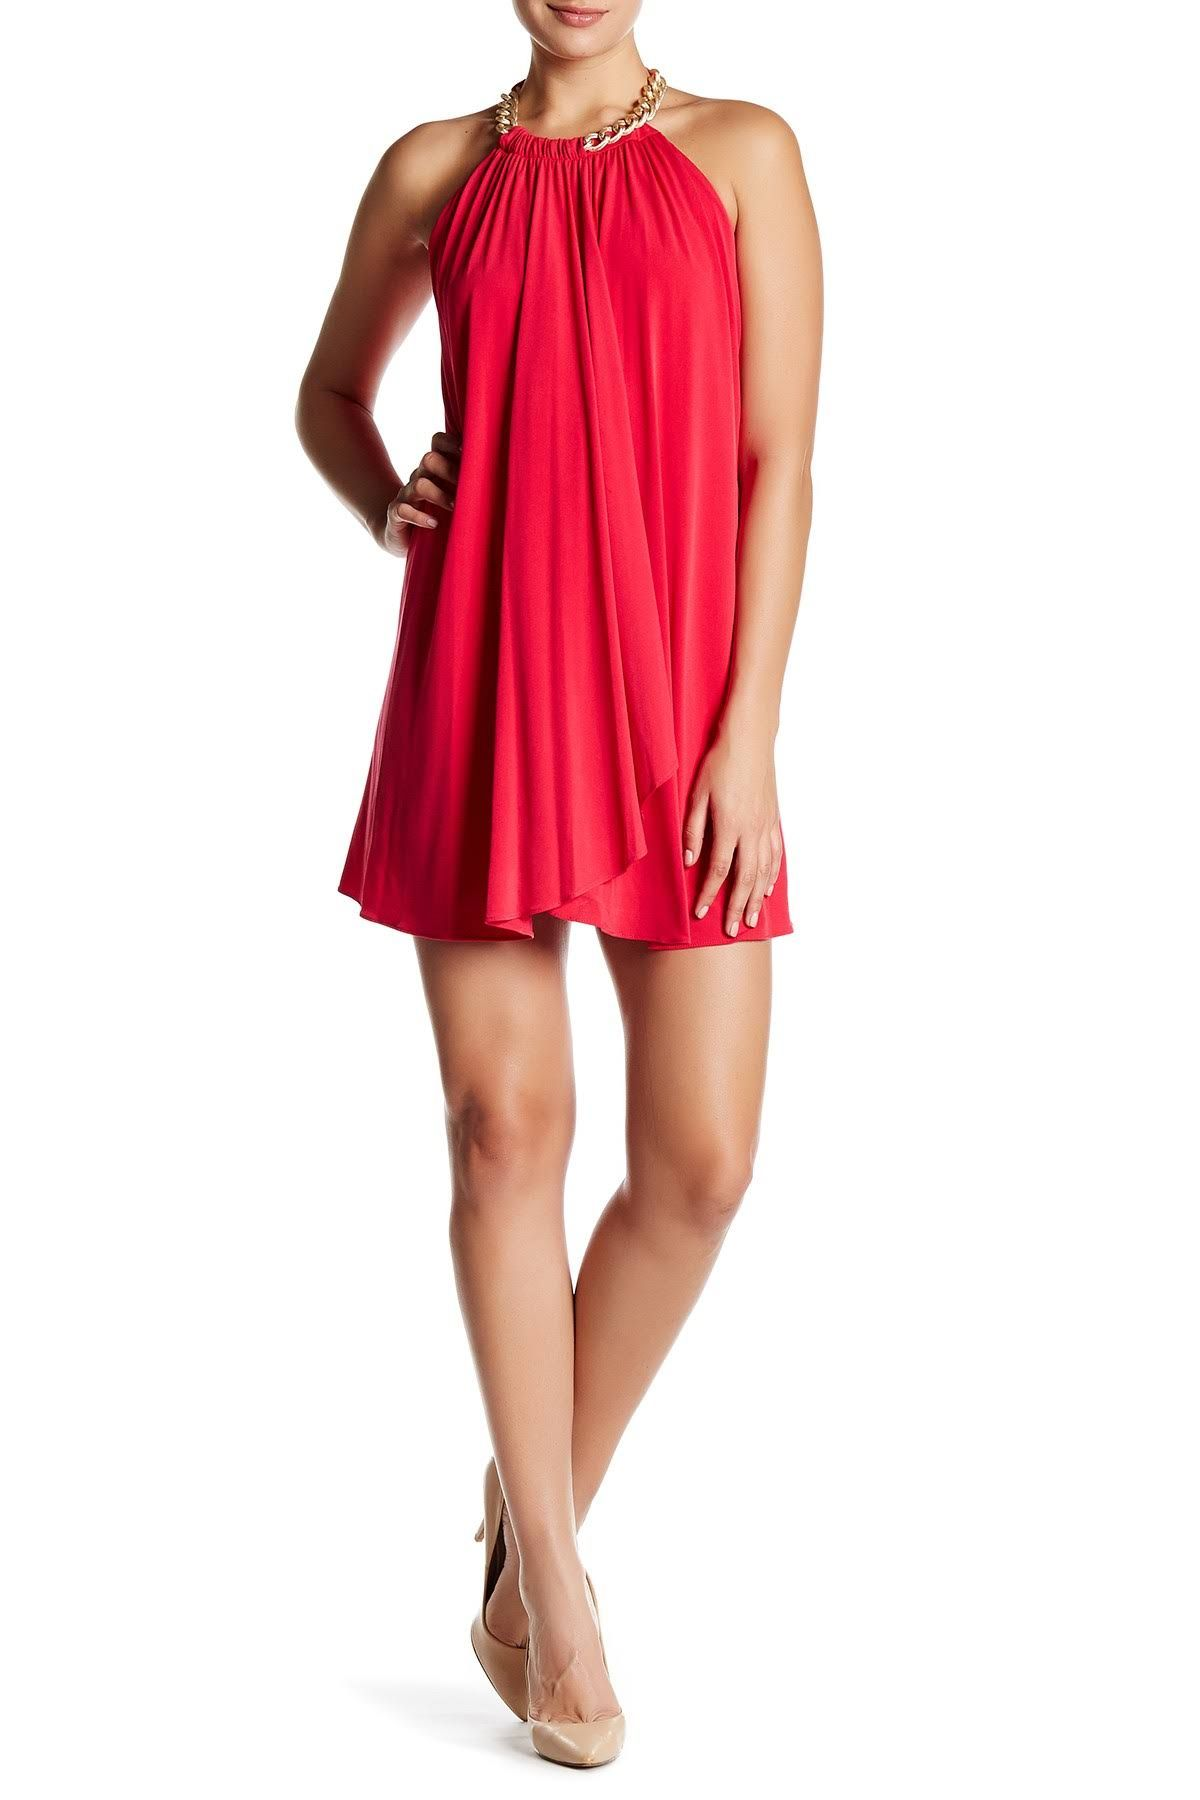 Jessica Simpson Chain Swing Dress At Nordstrom Rack Womens Cocktail Dresses Party Dresses Dresswear Swing Dress Nordstrom Dresses Dresses [ 1800 x 1200 Pixel ]